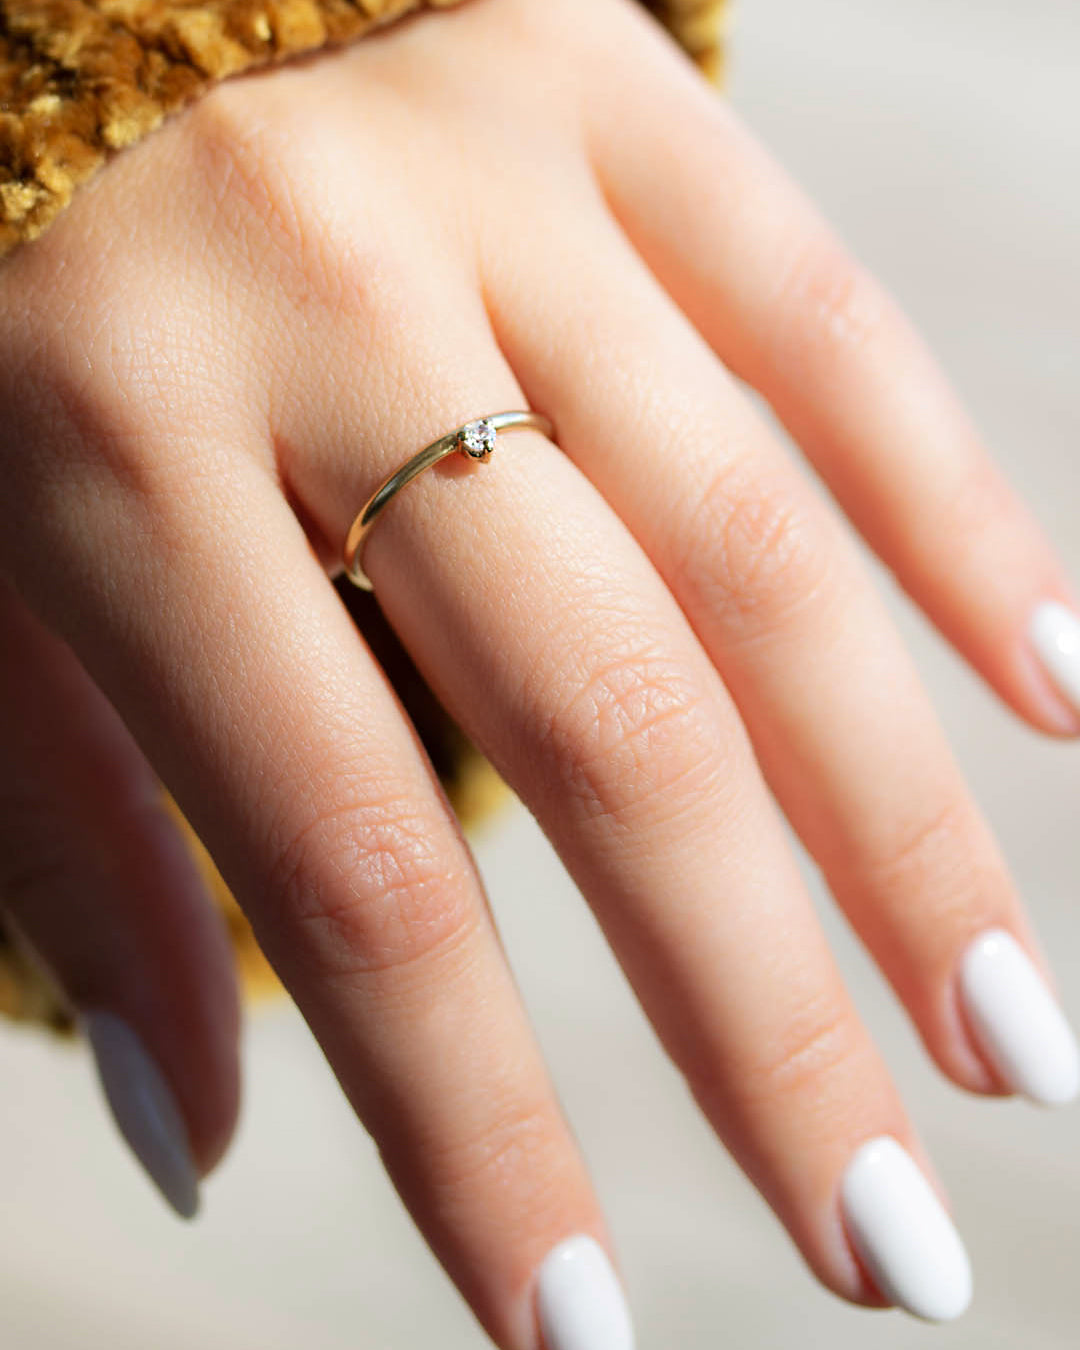 A dainty 14k yellow gold ring, set with one tiny, brilliant cut white diamond.